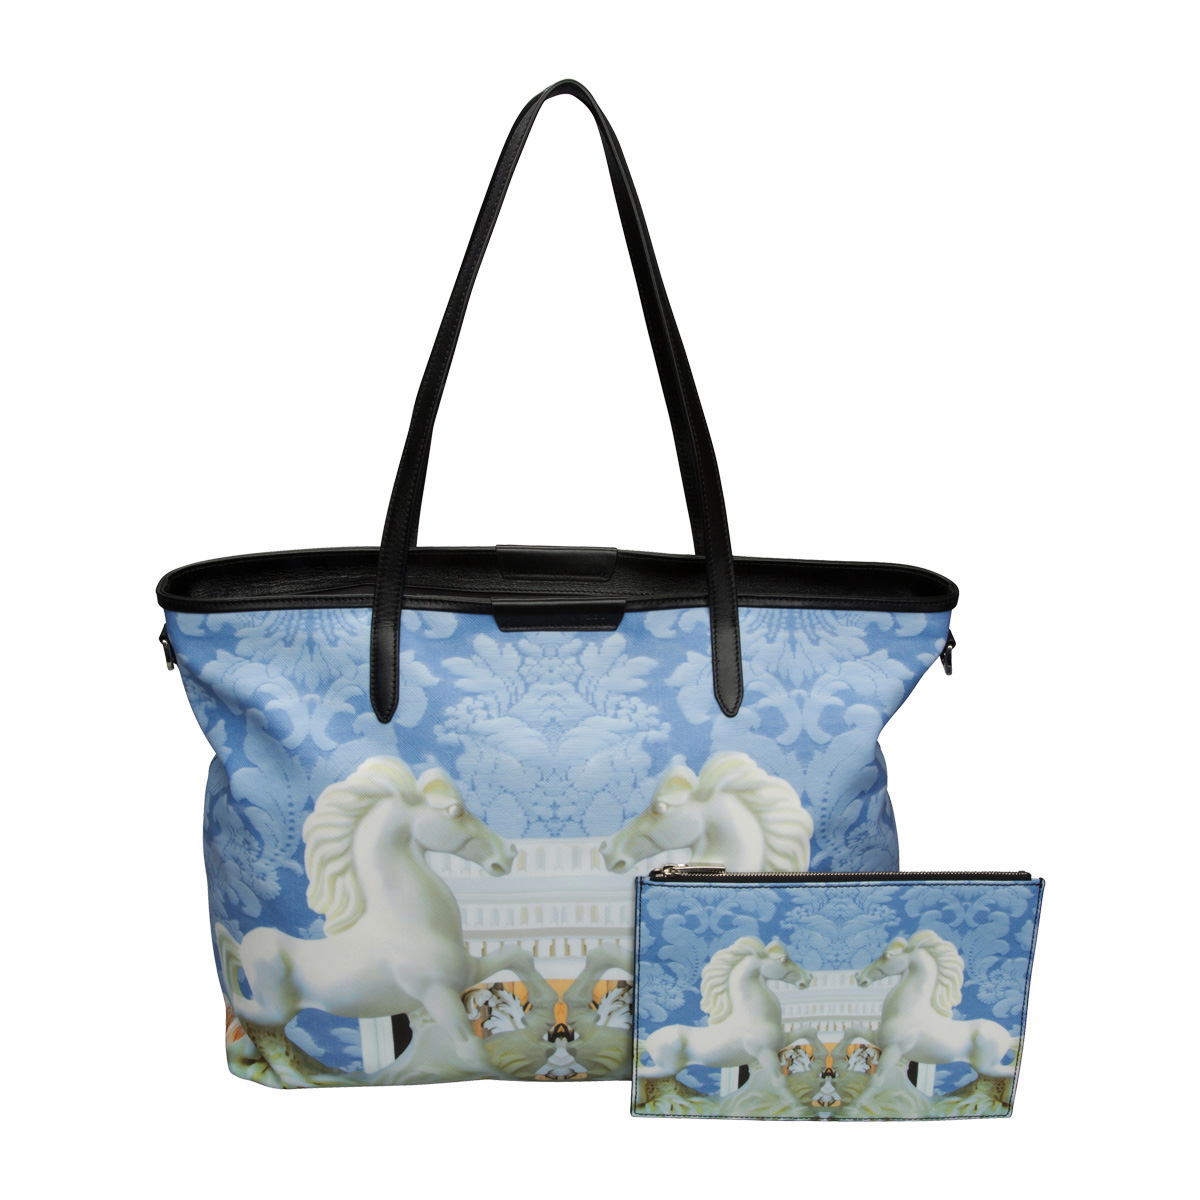 Darvesh Enterprise - offering Diaper / Nappy Bags Fancy & Exclusive, Diaper Bag at Rs /piece(s) in Mumbai, Maharashtra. Get best price and read about company and get contact details and address.